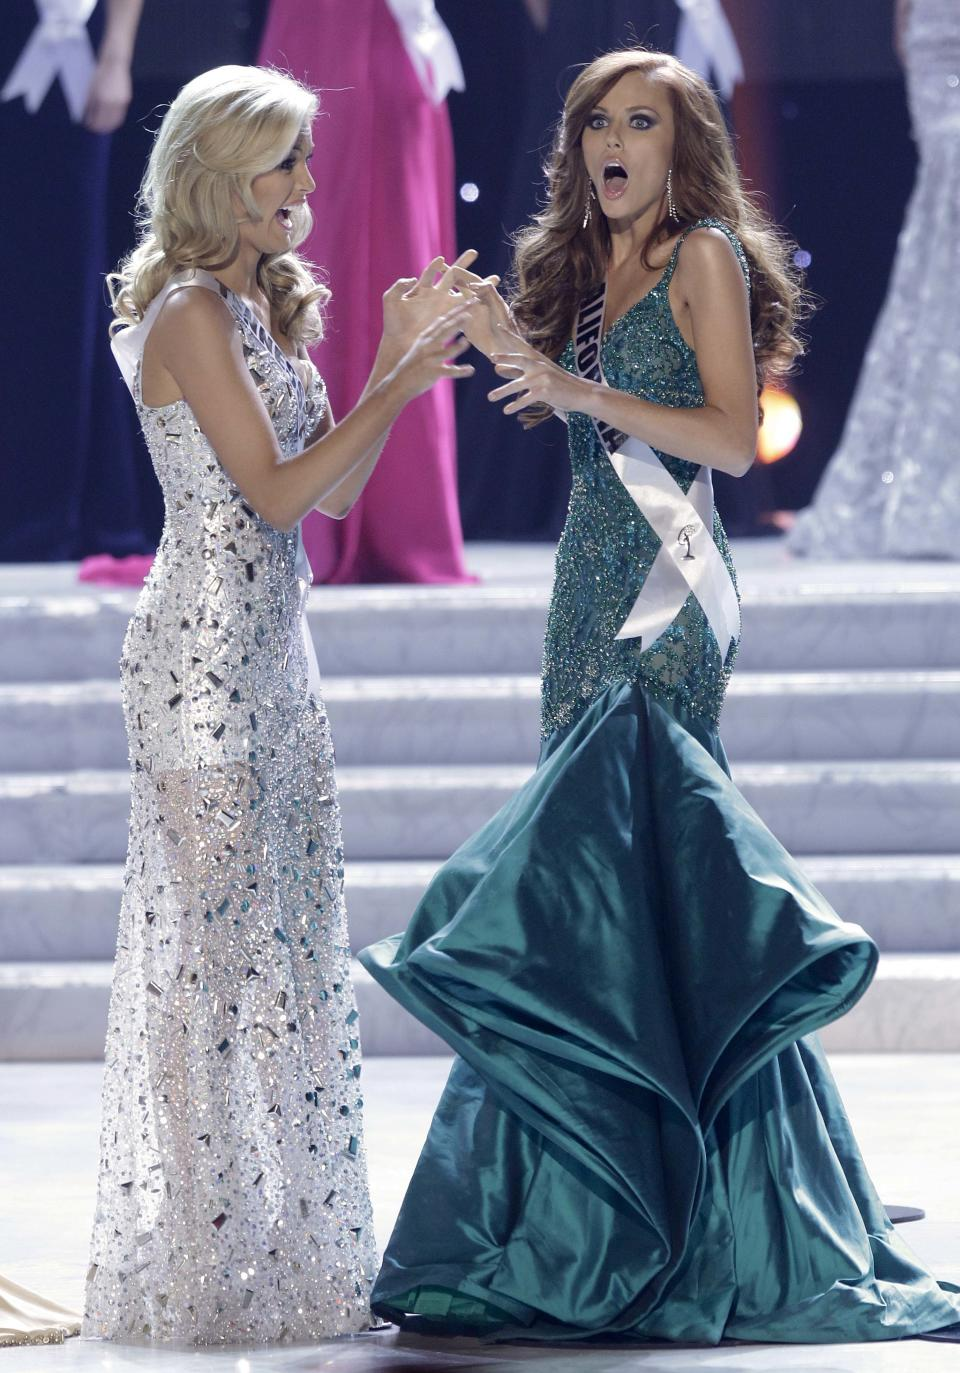 Alyssa Campanella, Miss California, reacts as she is announced as the 2011 Miss USA as Miss Tennessee, Ashley Elizabeth Durham looks on, Sunday, June 19, 2011, in Las Vegas.  (AP Photo/Julie Jacobson)